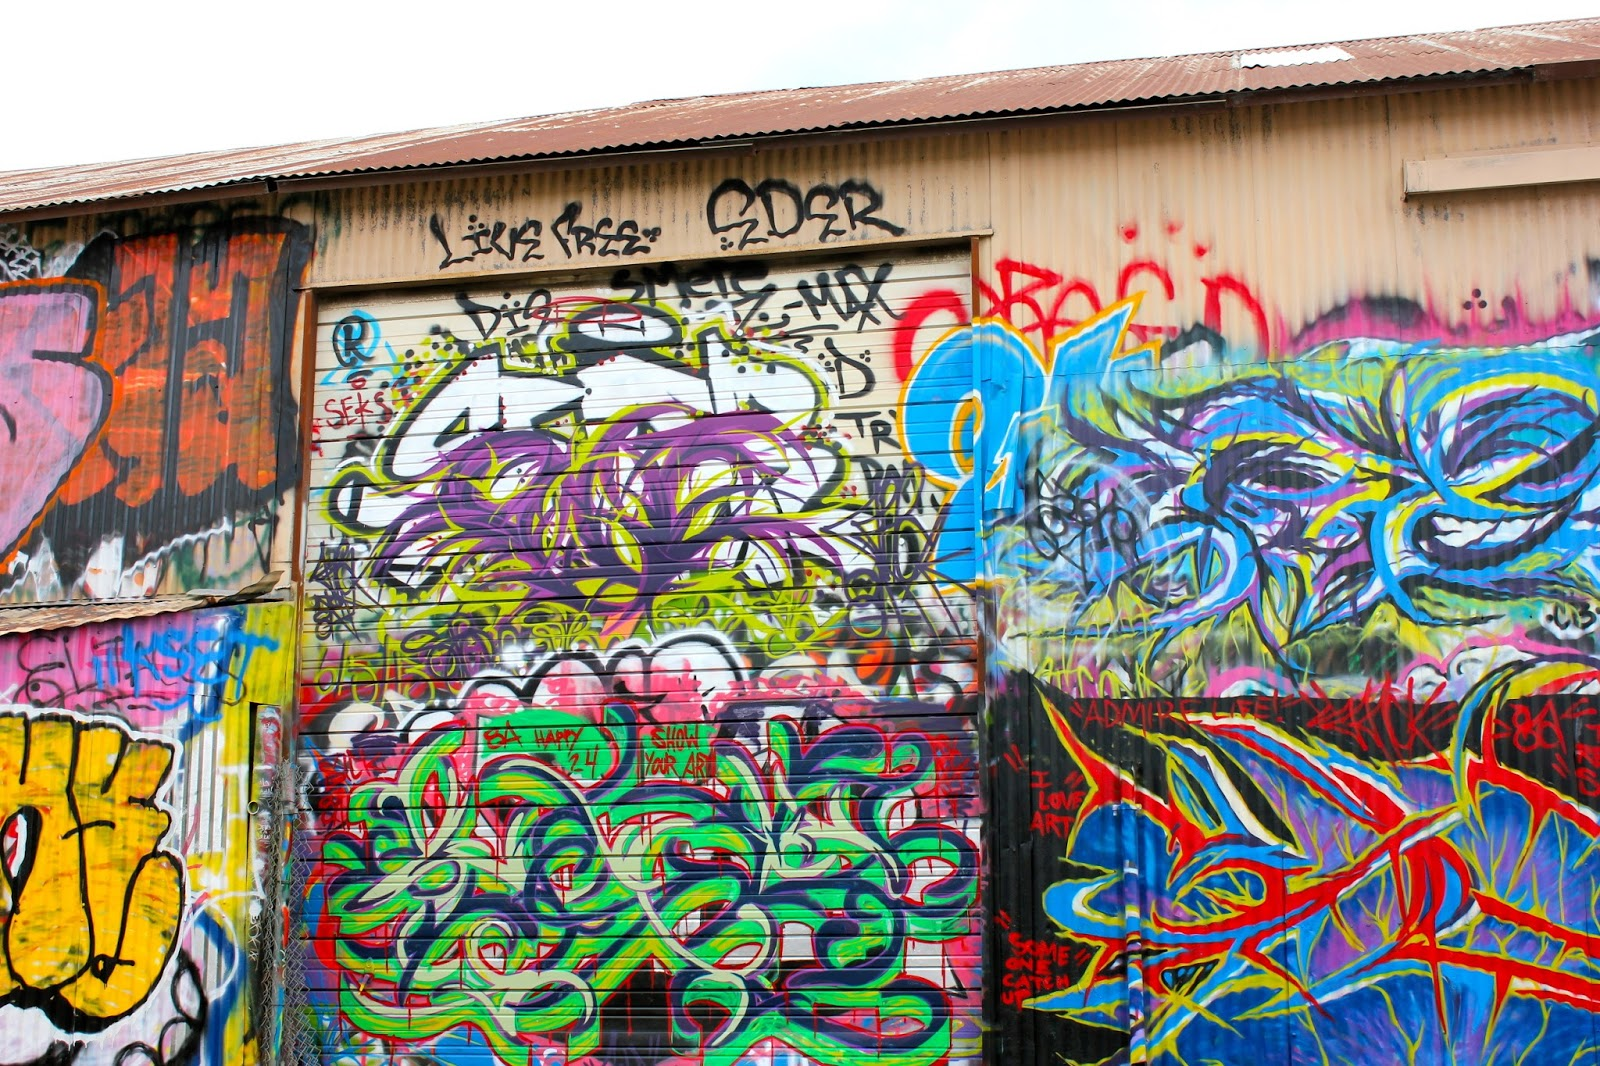 Graffiti wall dallas - In April Of 2013 The City Of Dallas Released A Building That Was A Free Canvas For Street Artists It S Called A Free Wall Therefore It Is Legal For